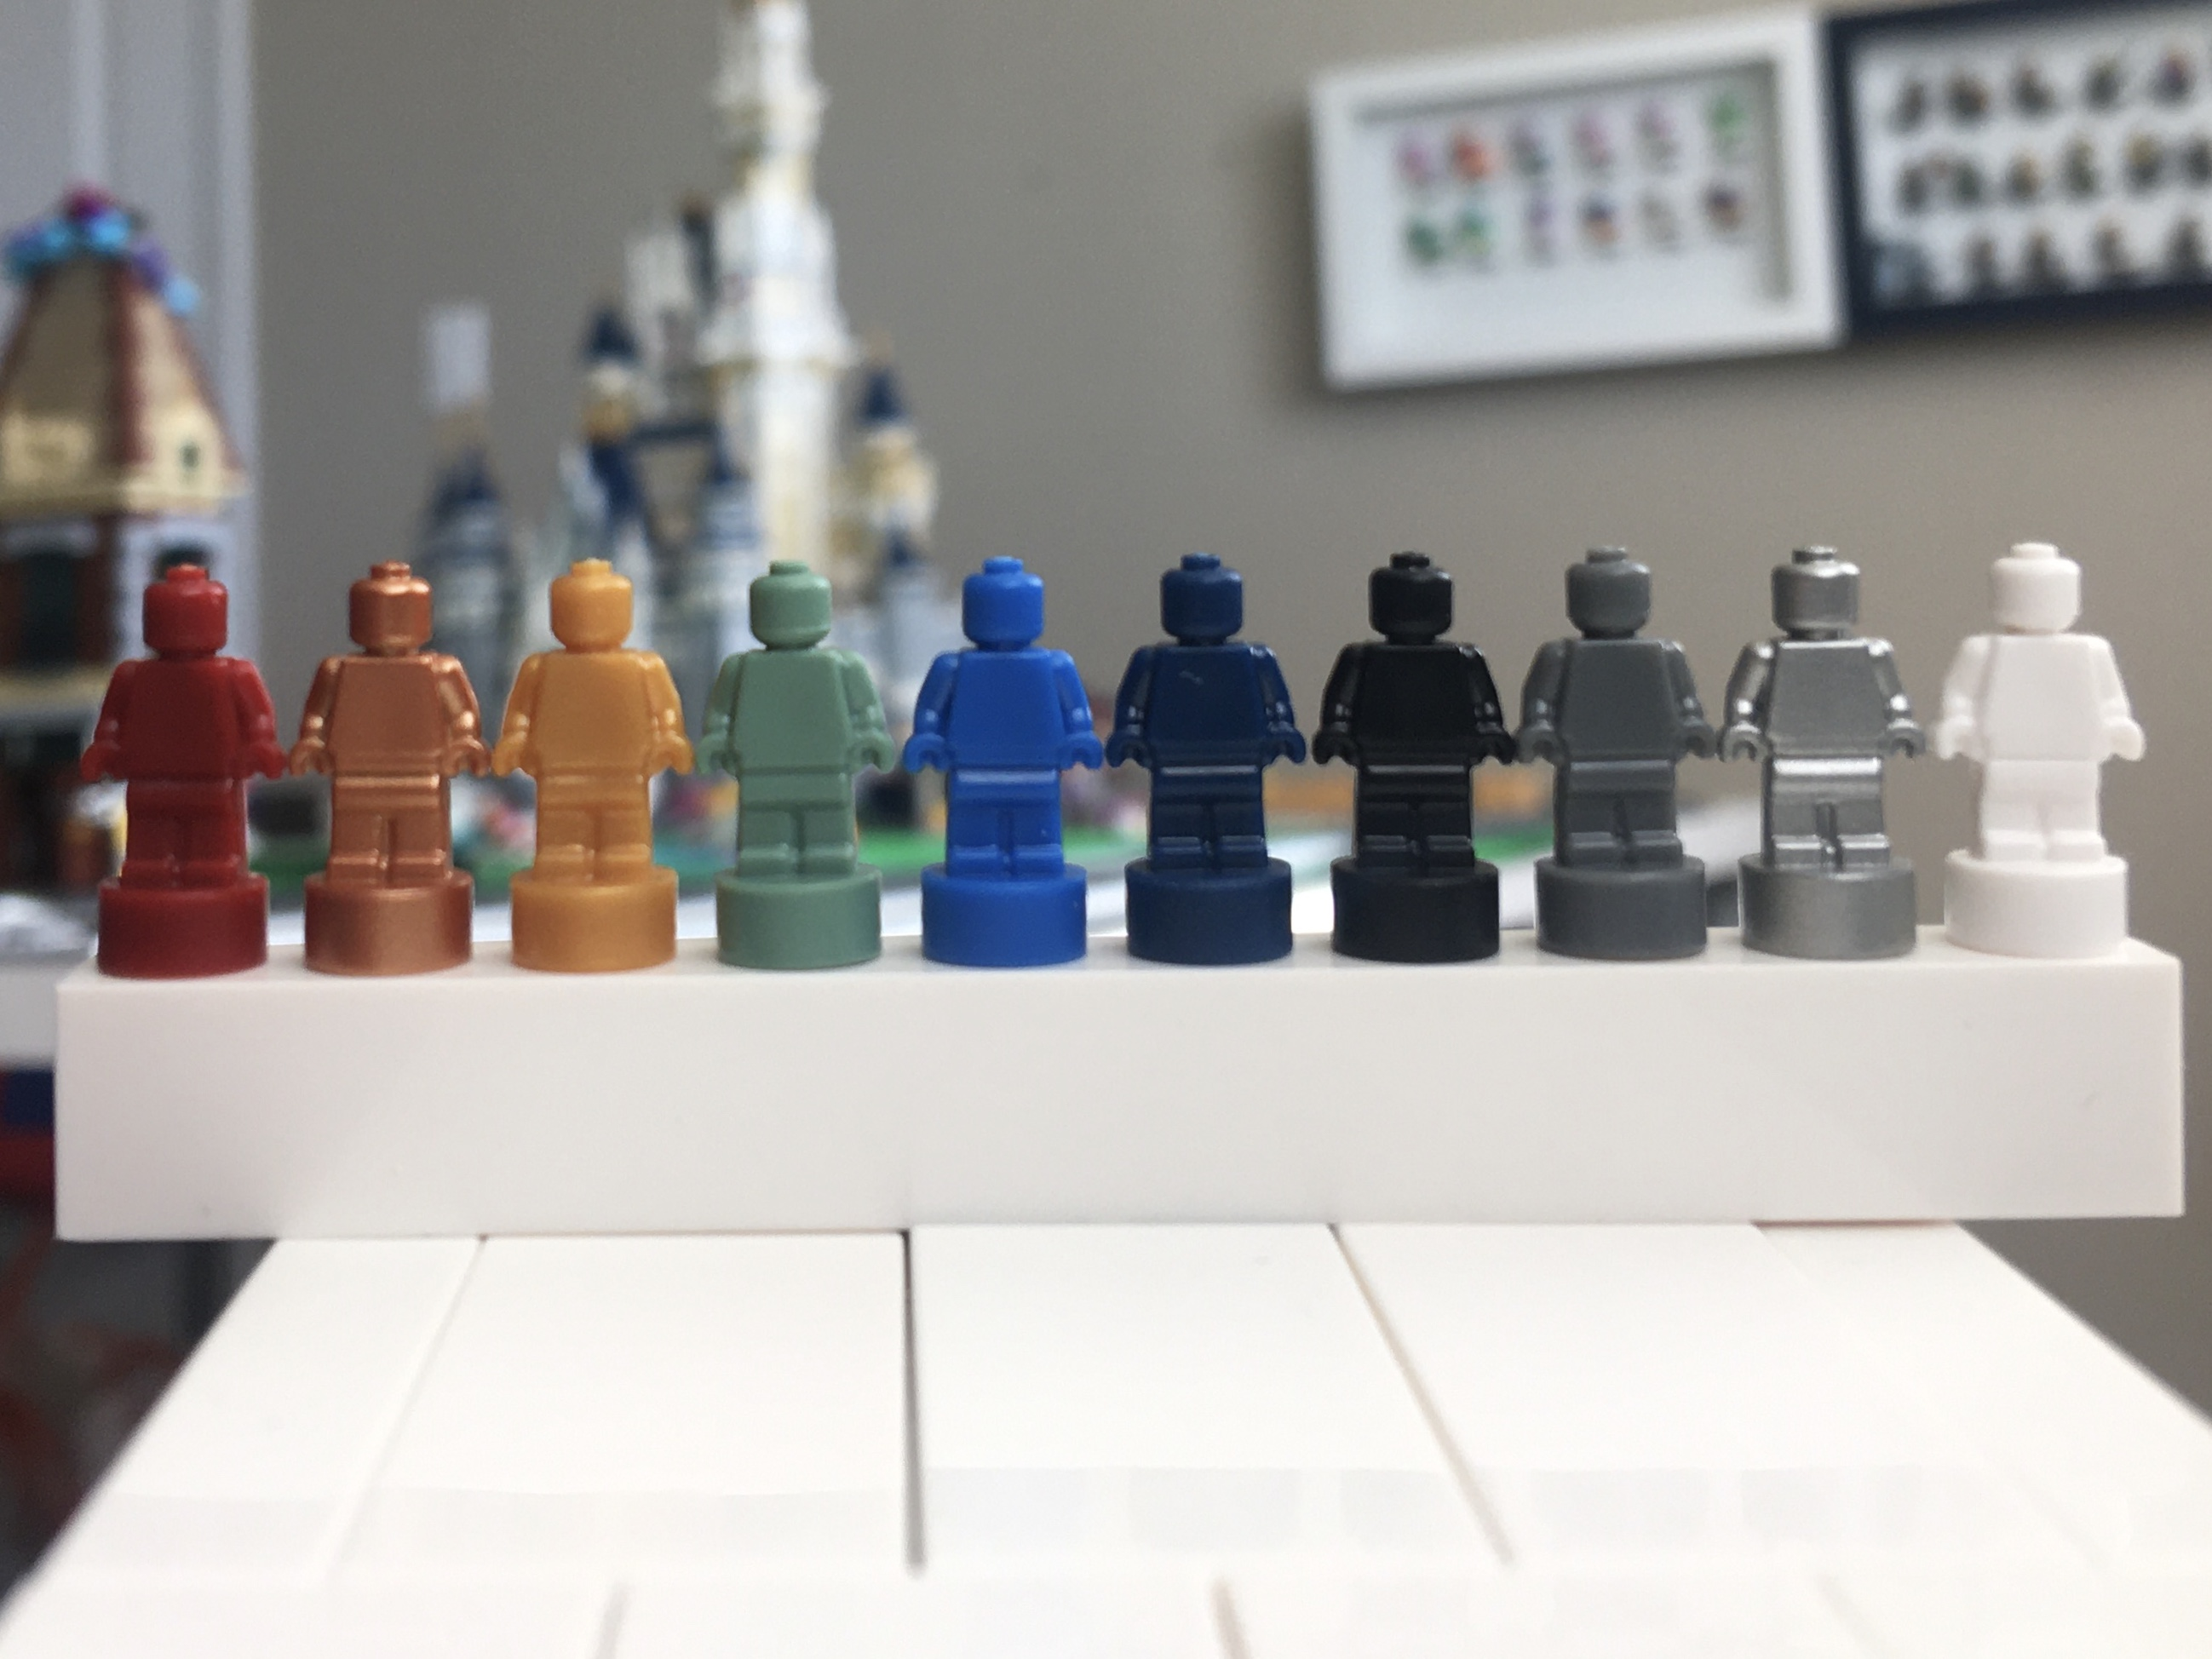 Set of 10 collectable LEGO monochrome nanofigures.